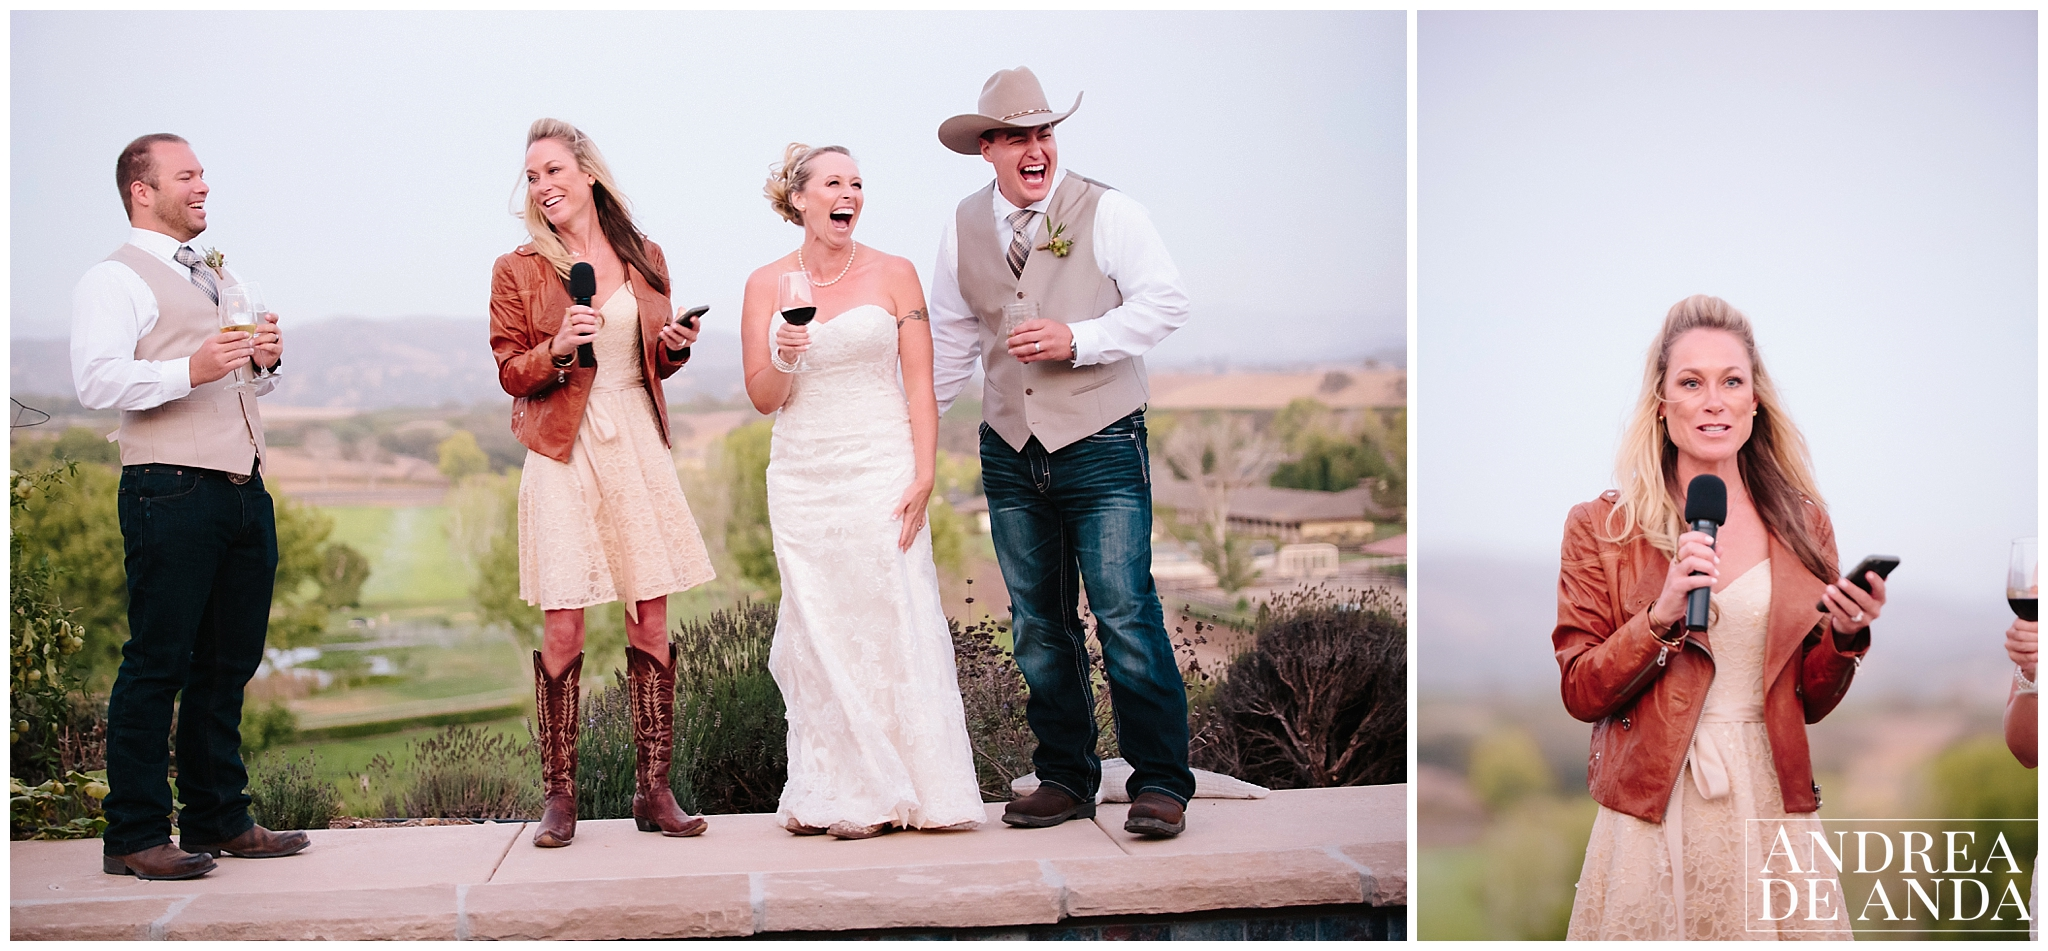 Santa Ynez Valley back yard wedding_Andrea de Anda Photography__0063.jpg